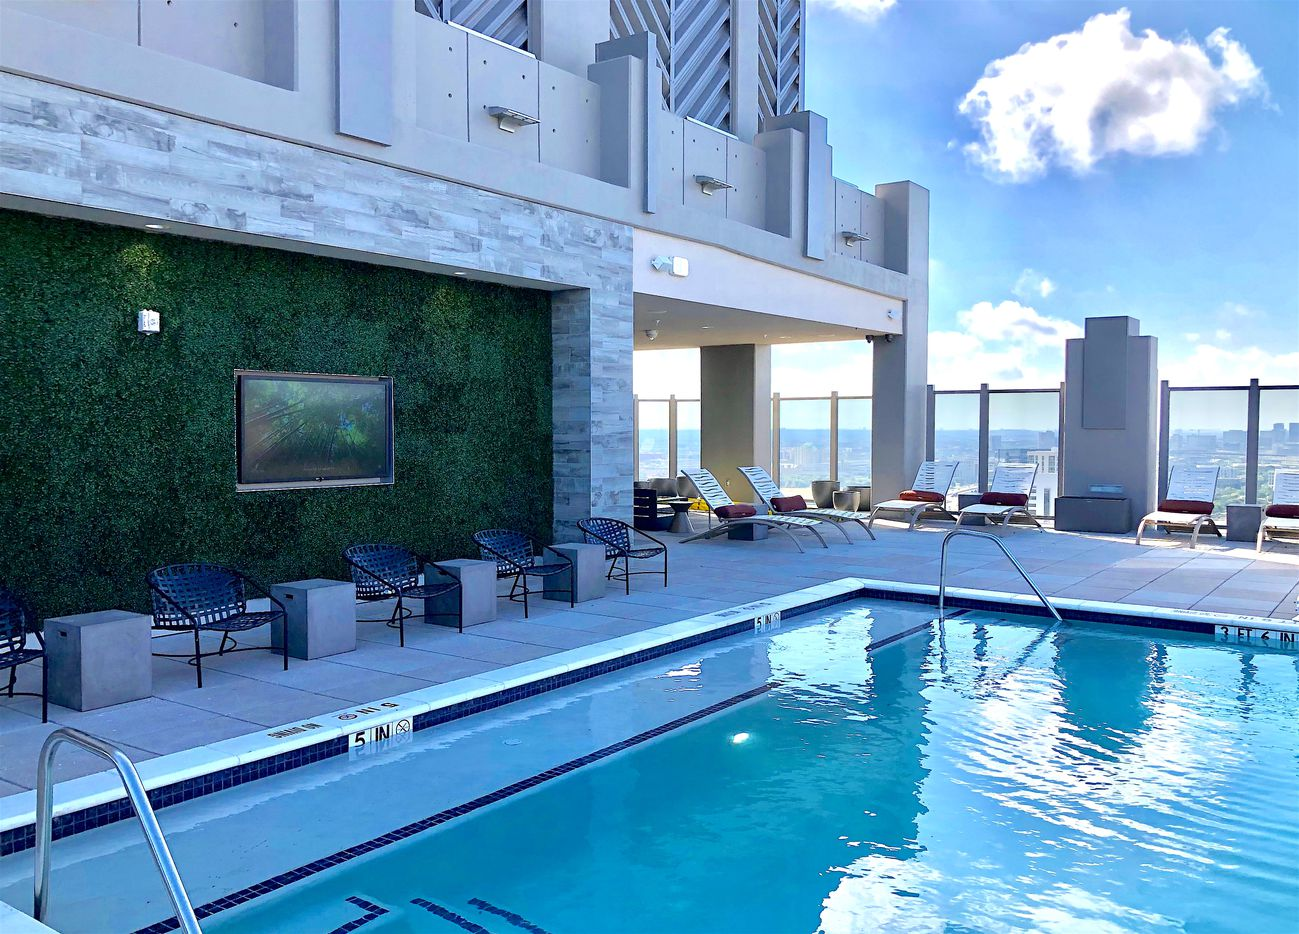 The rooftop pool at the SkyHouse Frisco Station.